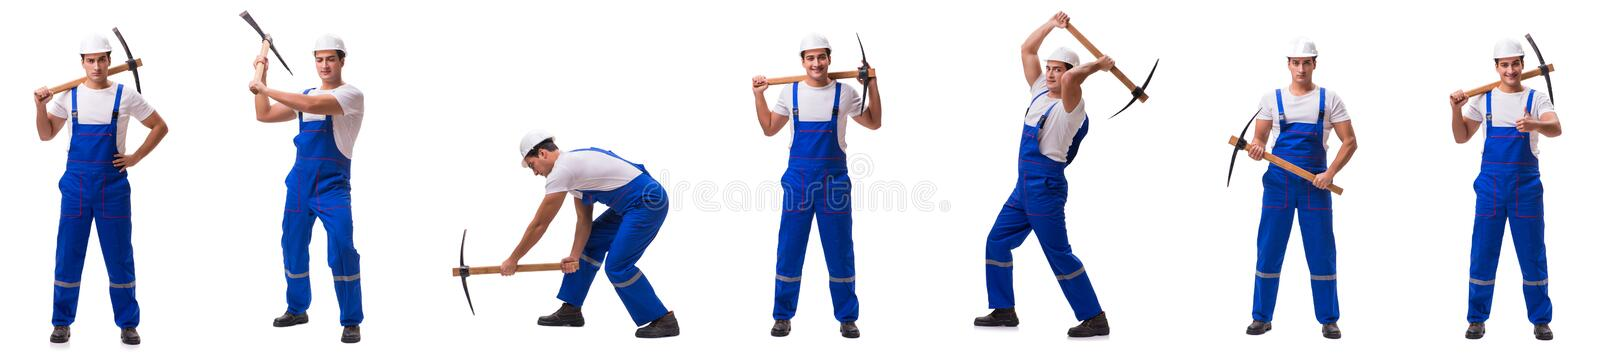 The man with axe on the white. Man with axe on the white royalty free stock photography